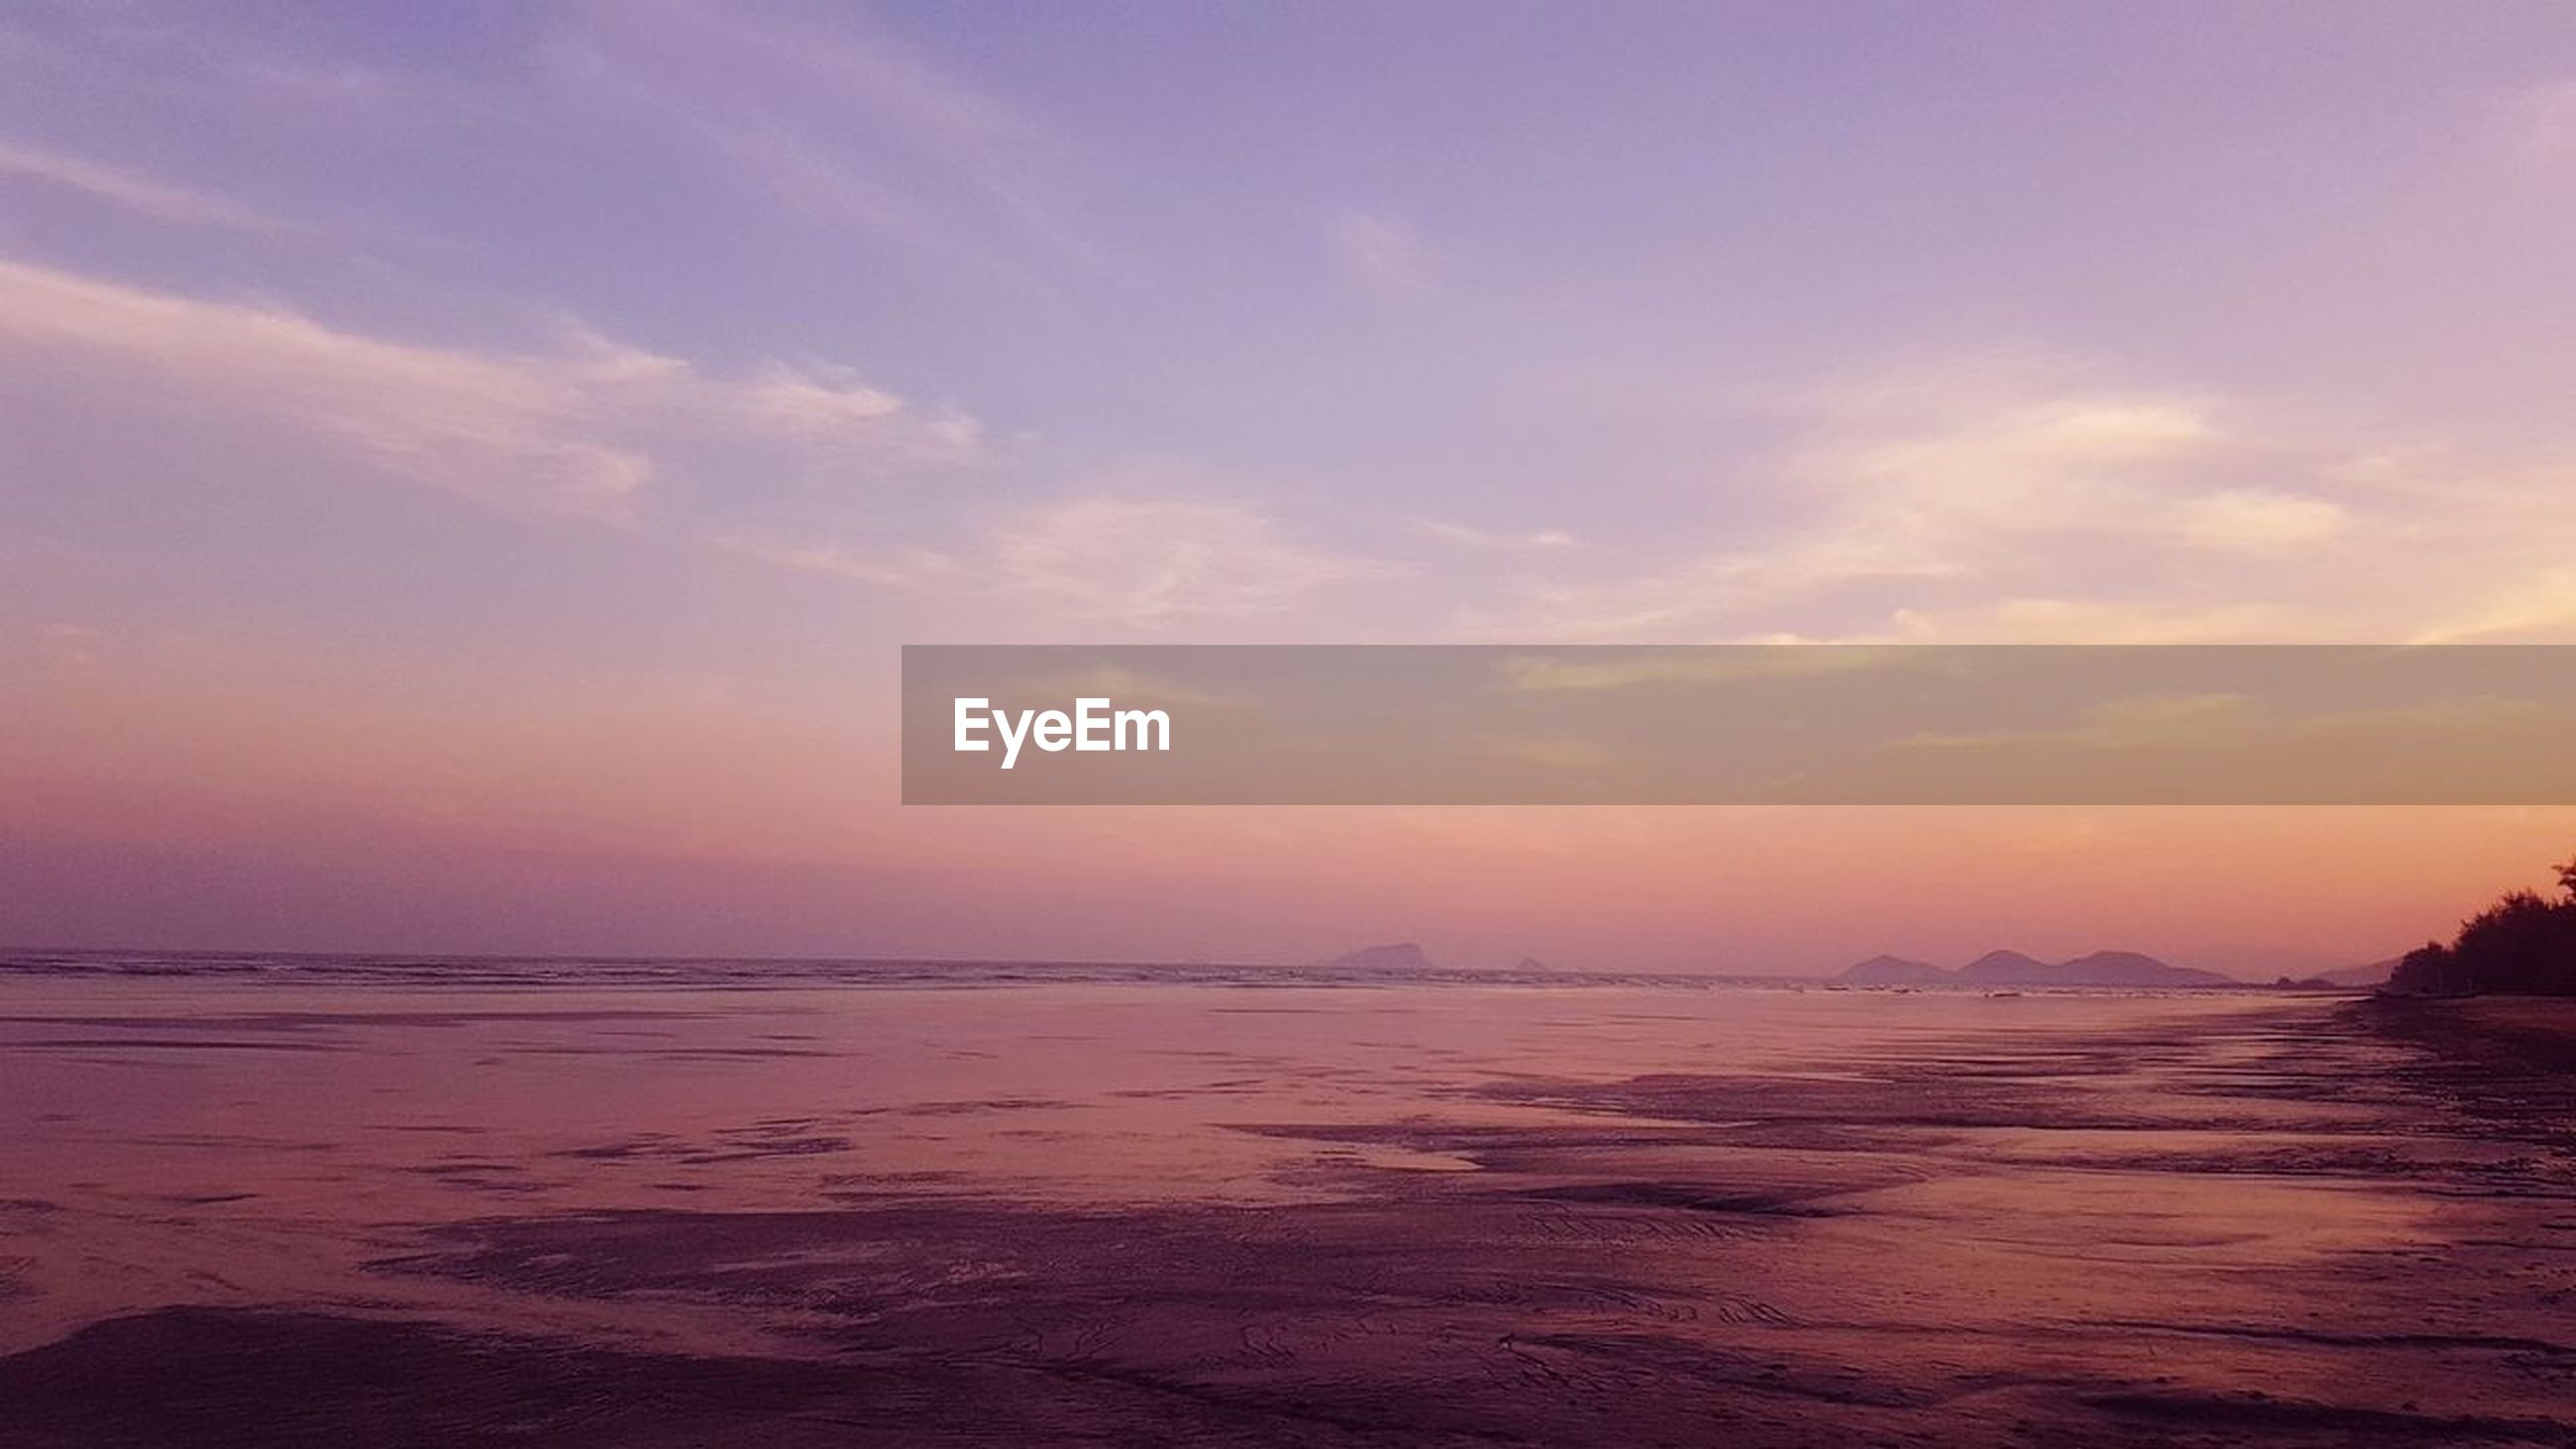 sky, scenics - nature, beauty in nature, tranquility, tranquil scene, water, sunset, sea, cloud - sky, idyllic, no people, nature, non-urban scene, outdoors, beach, land, waterfront, remote, horizon